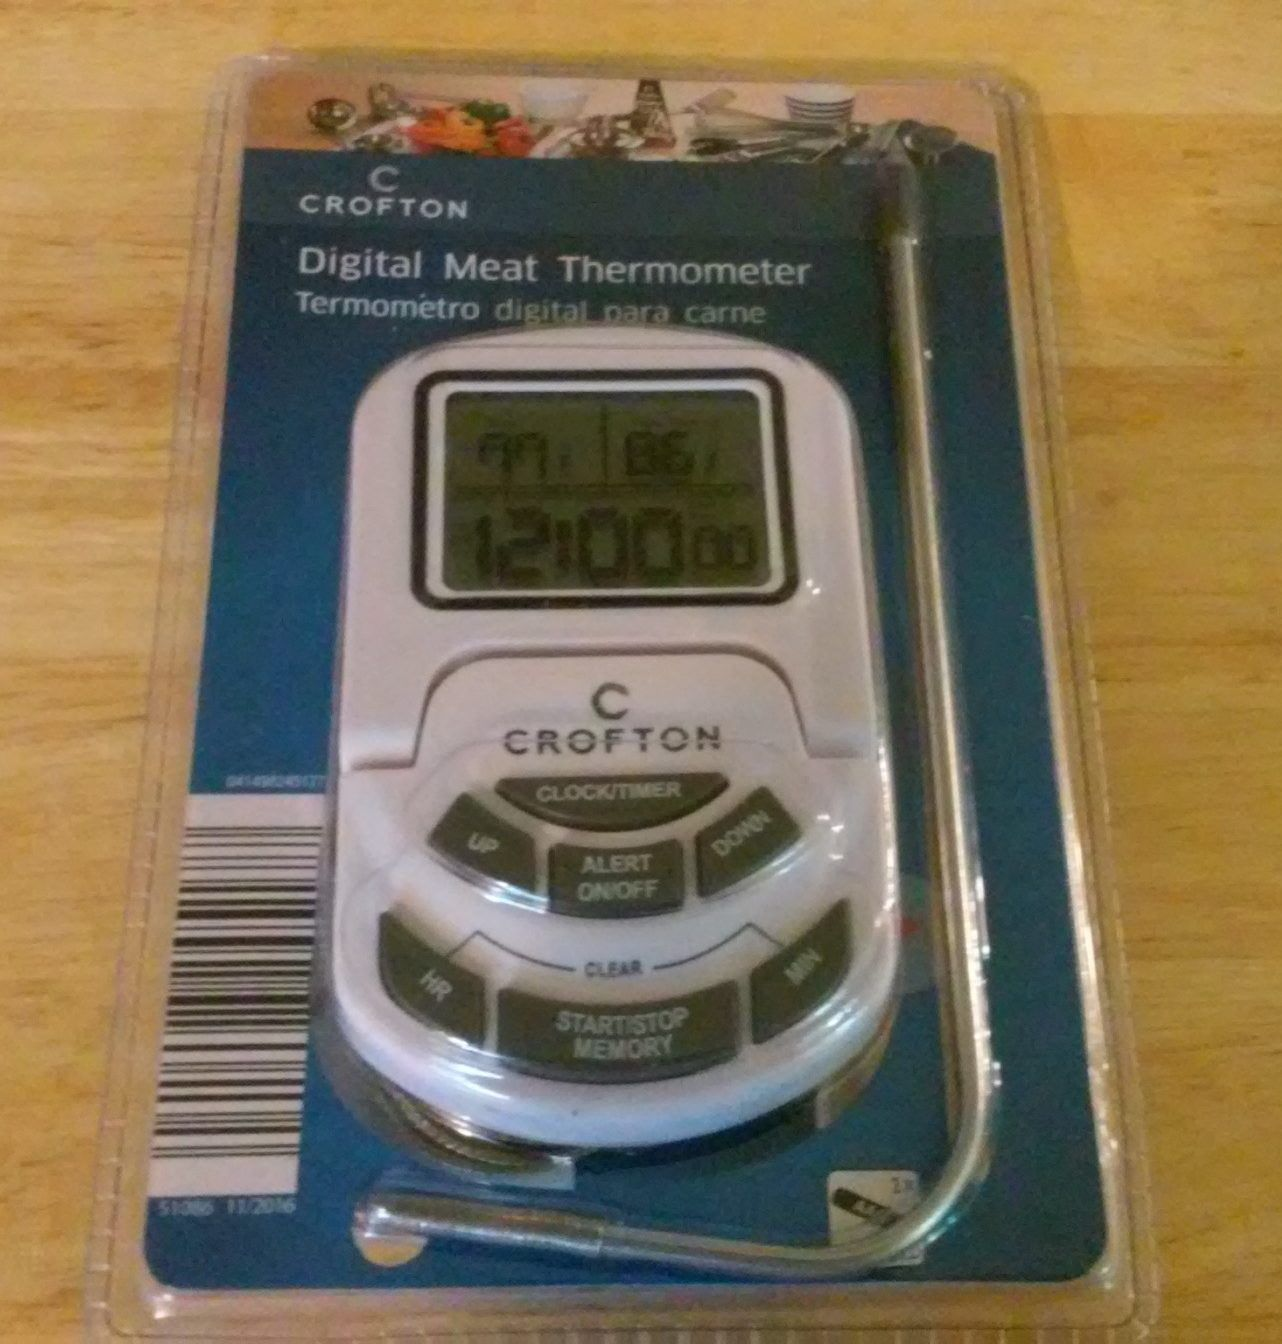 Crofton Digital Meat Thermometer Digital Meat Thermometer Meat